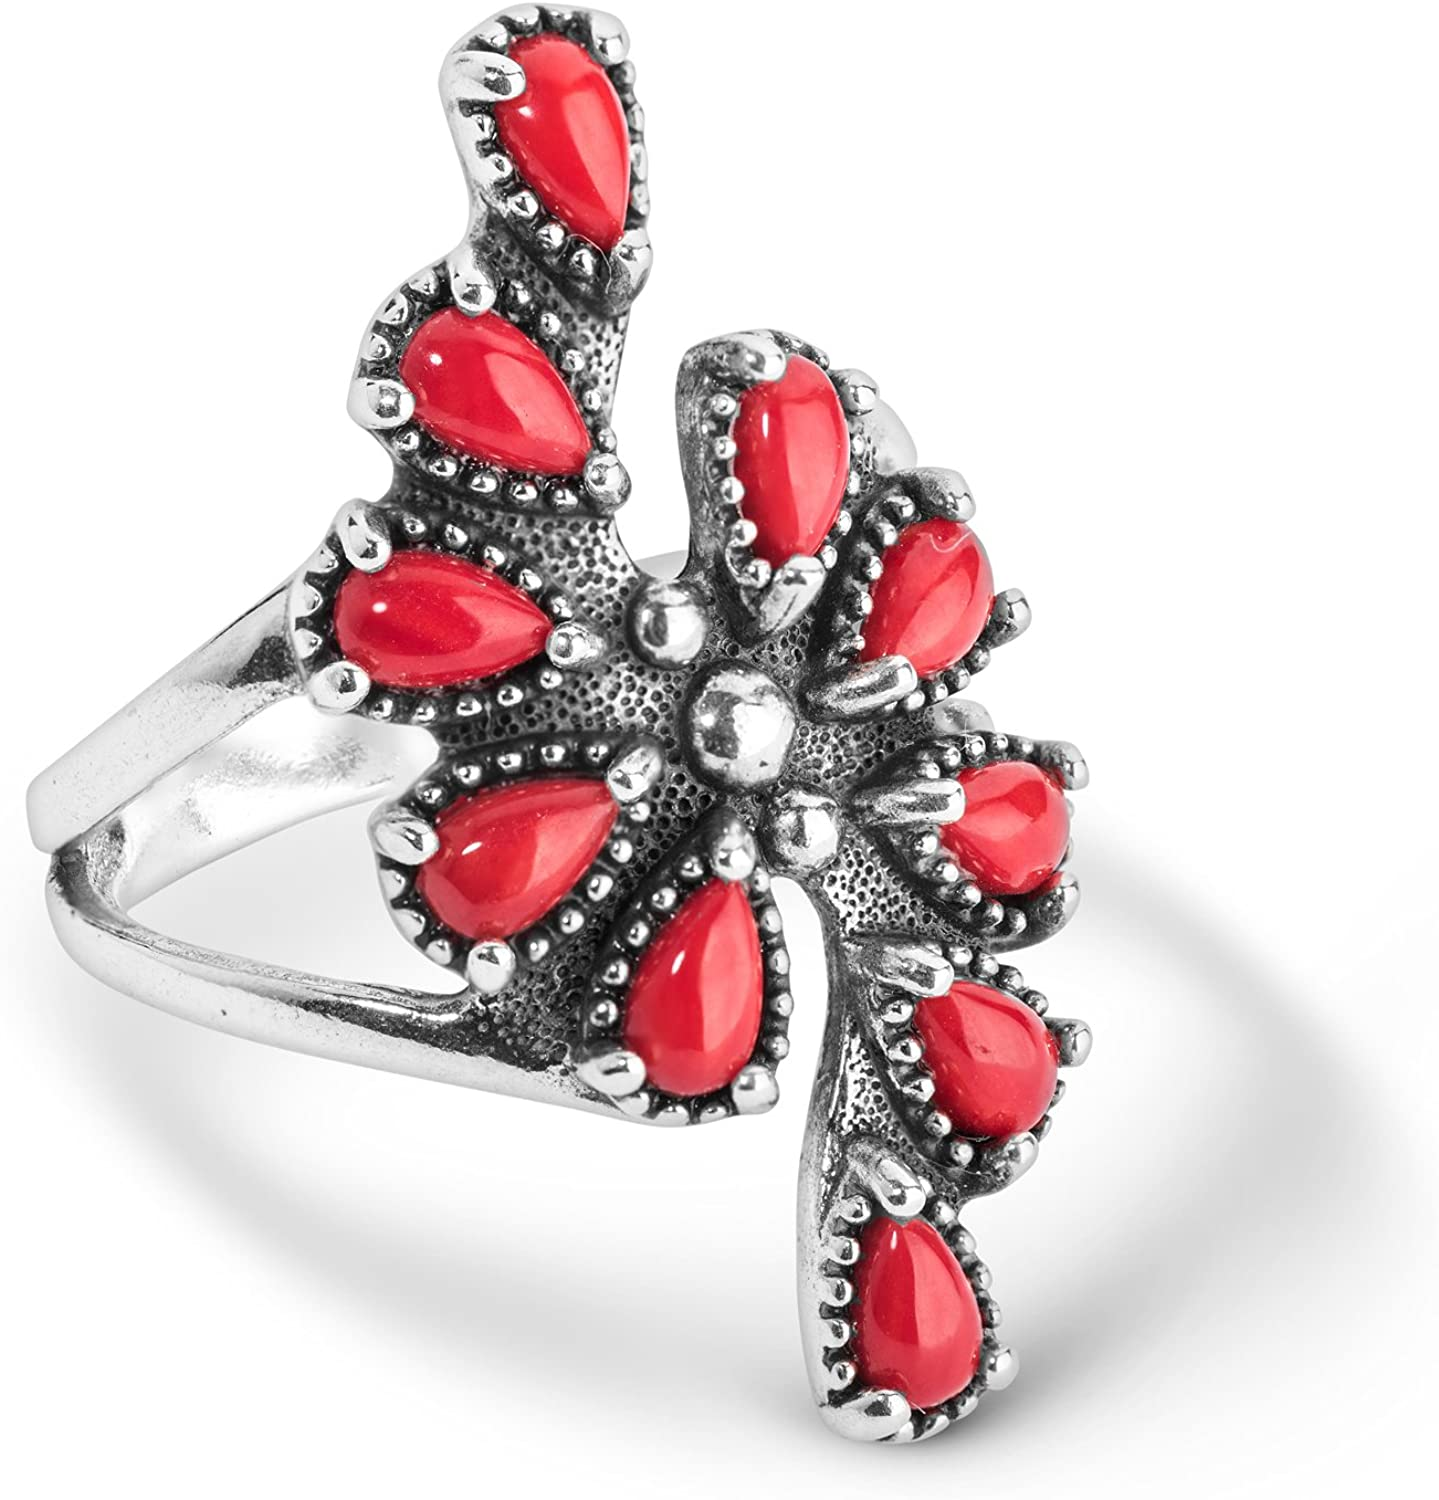 American West Sterling Silver Red Coral Gemstone Cluster Ring Size 5 to 10